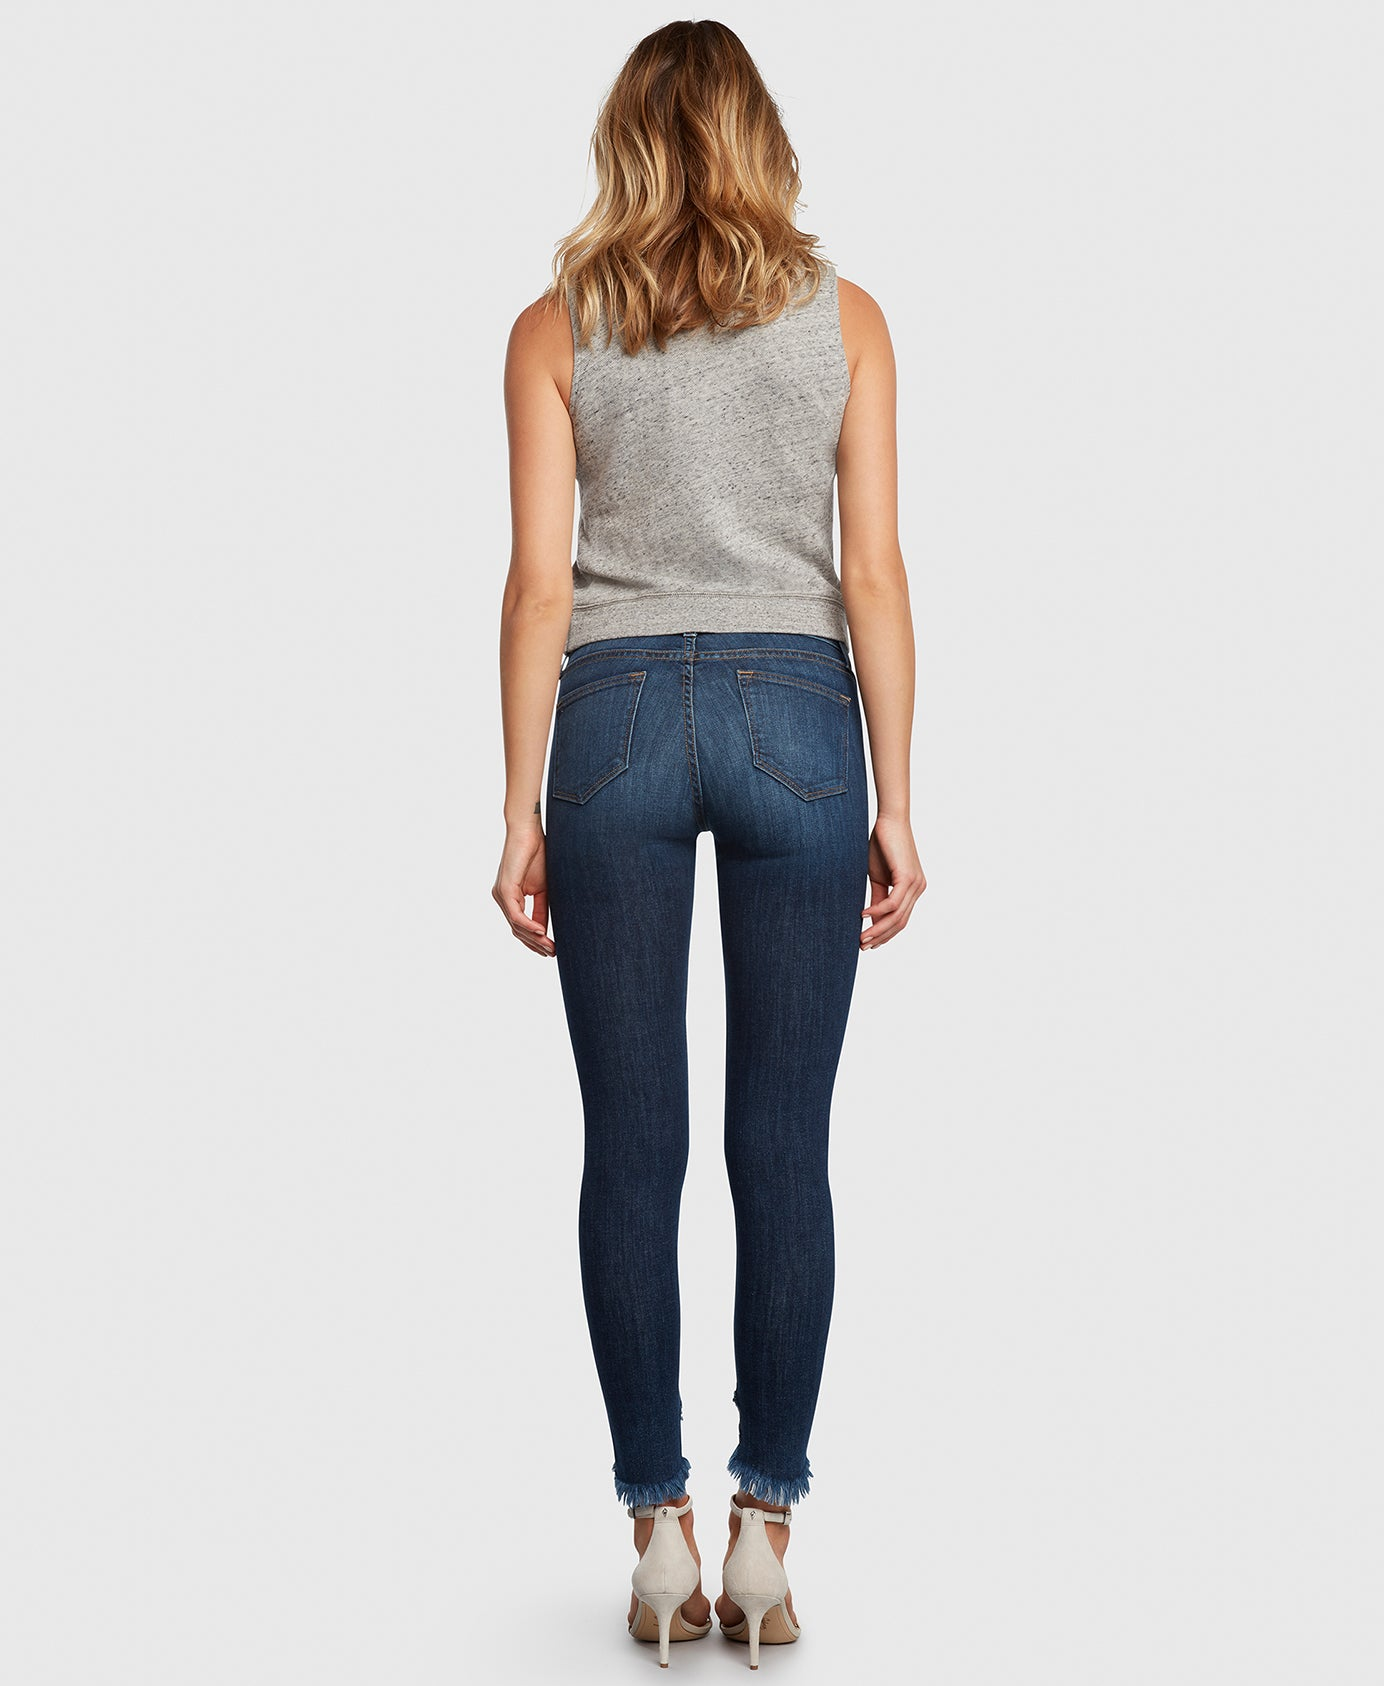 Principle DREAMER in Roll With It raw hem skinny jeans back